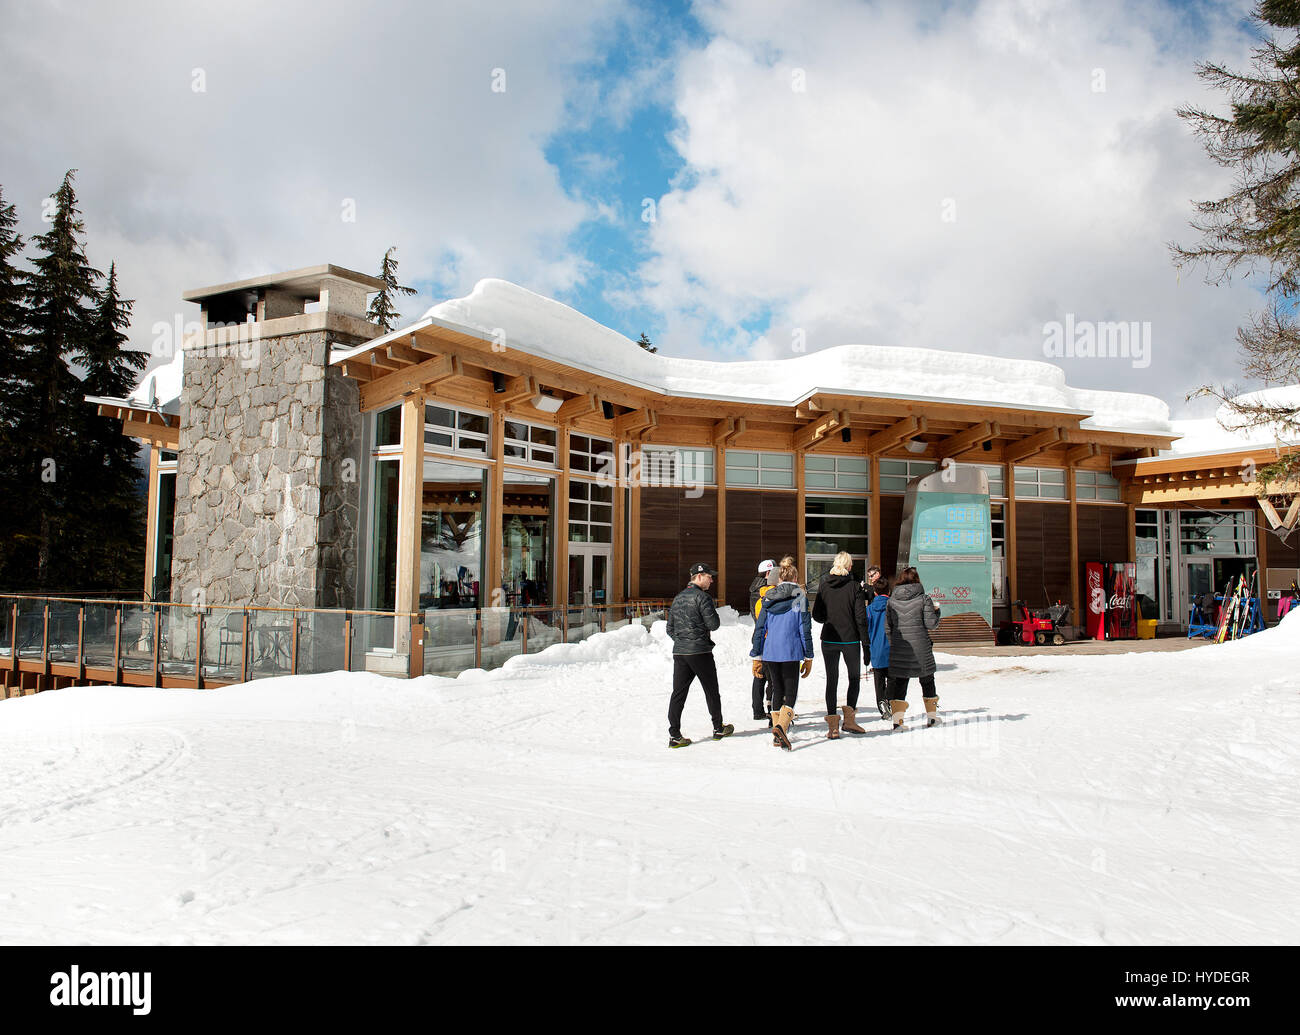 People in front of the day lodge at the Whistler Olympic Park. - Stock Image